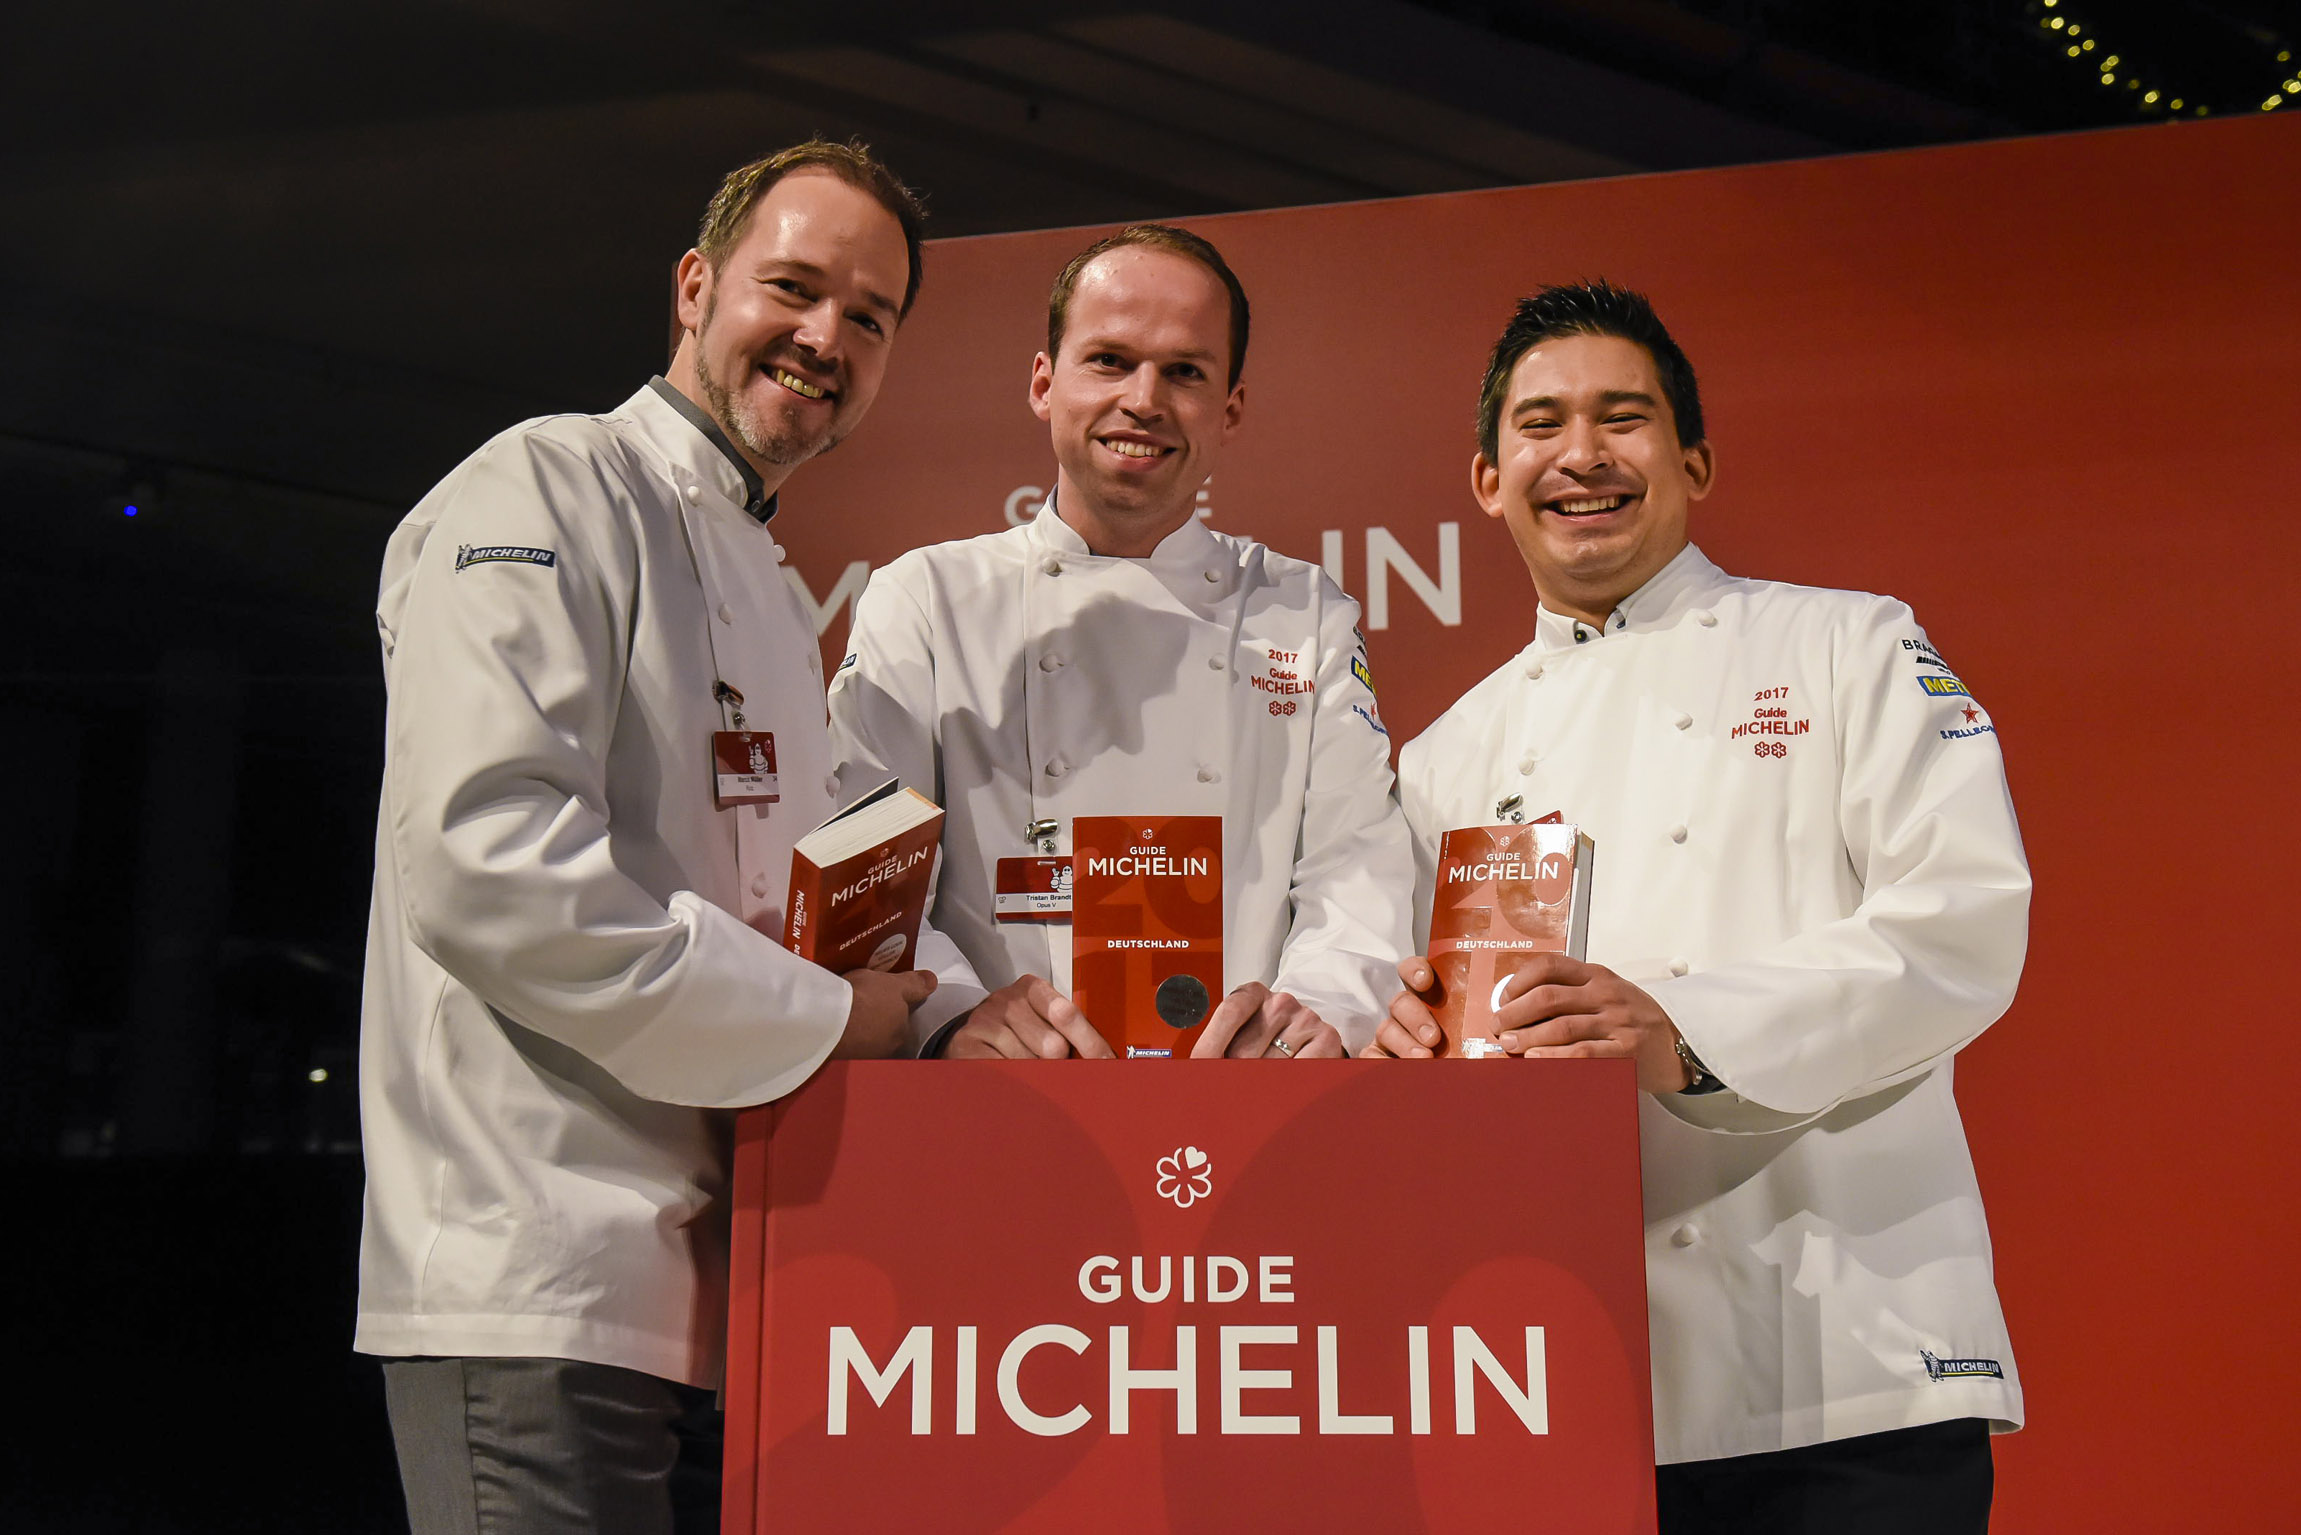 Guide Michelin 2 Sterne Restaurants 2017